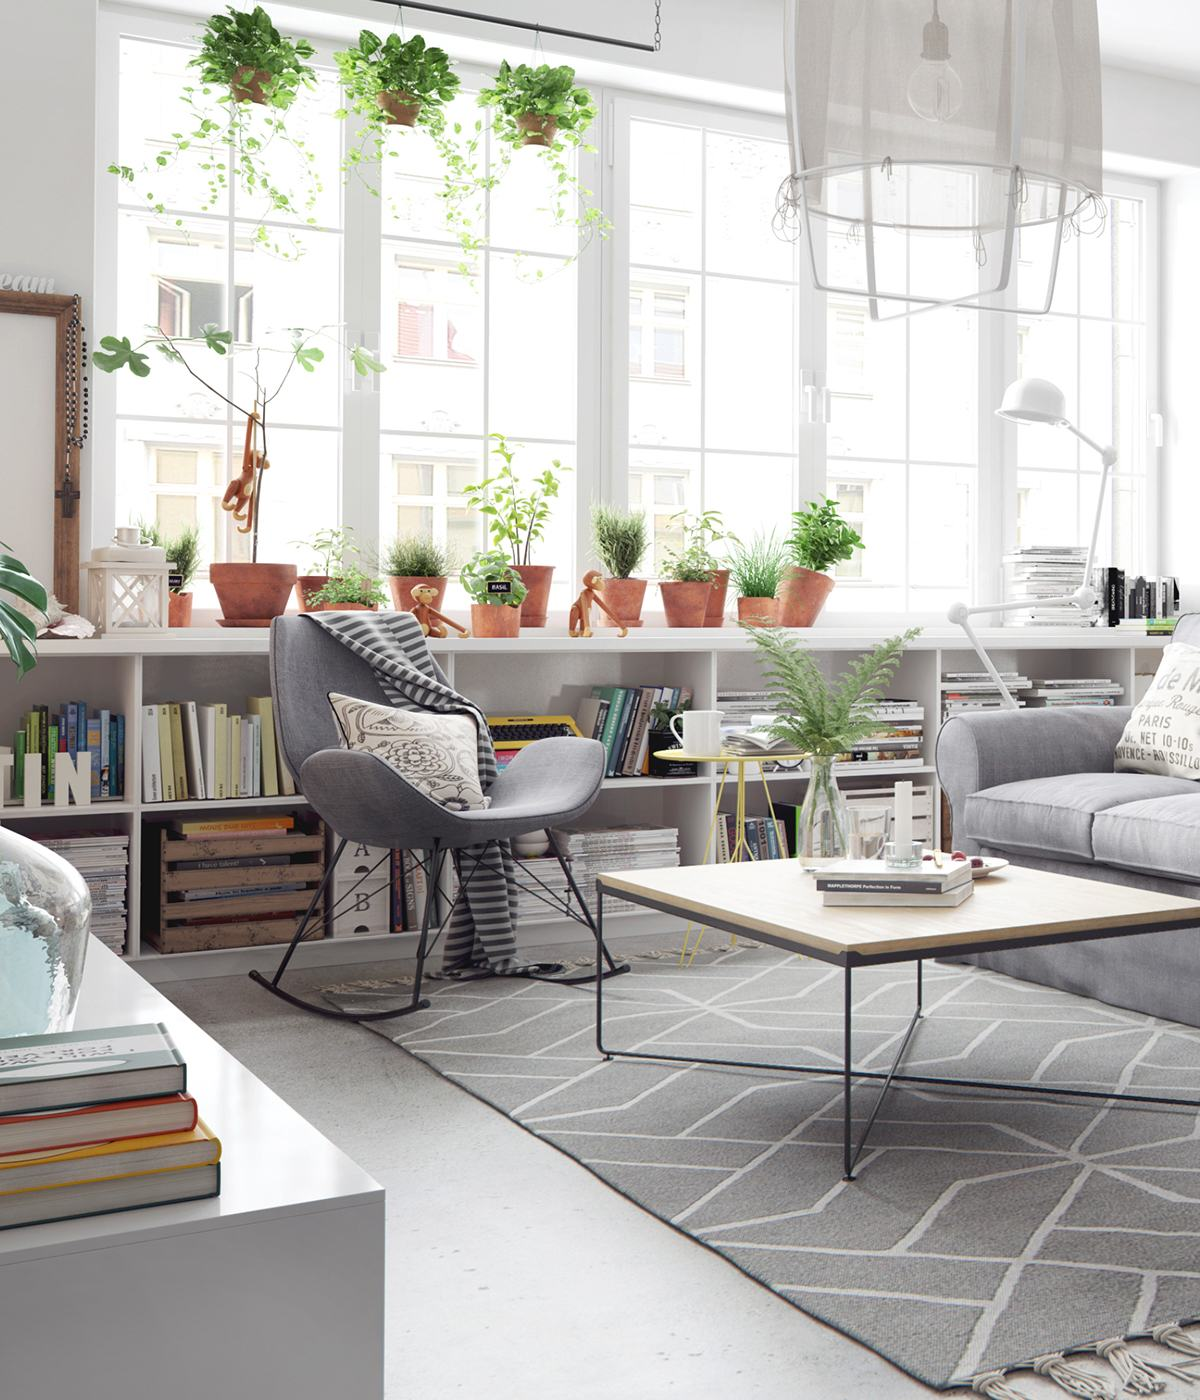 Bright and cheerful 5 beautiful scandinavian inspired for Scandinavian interior